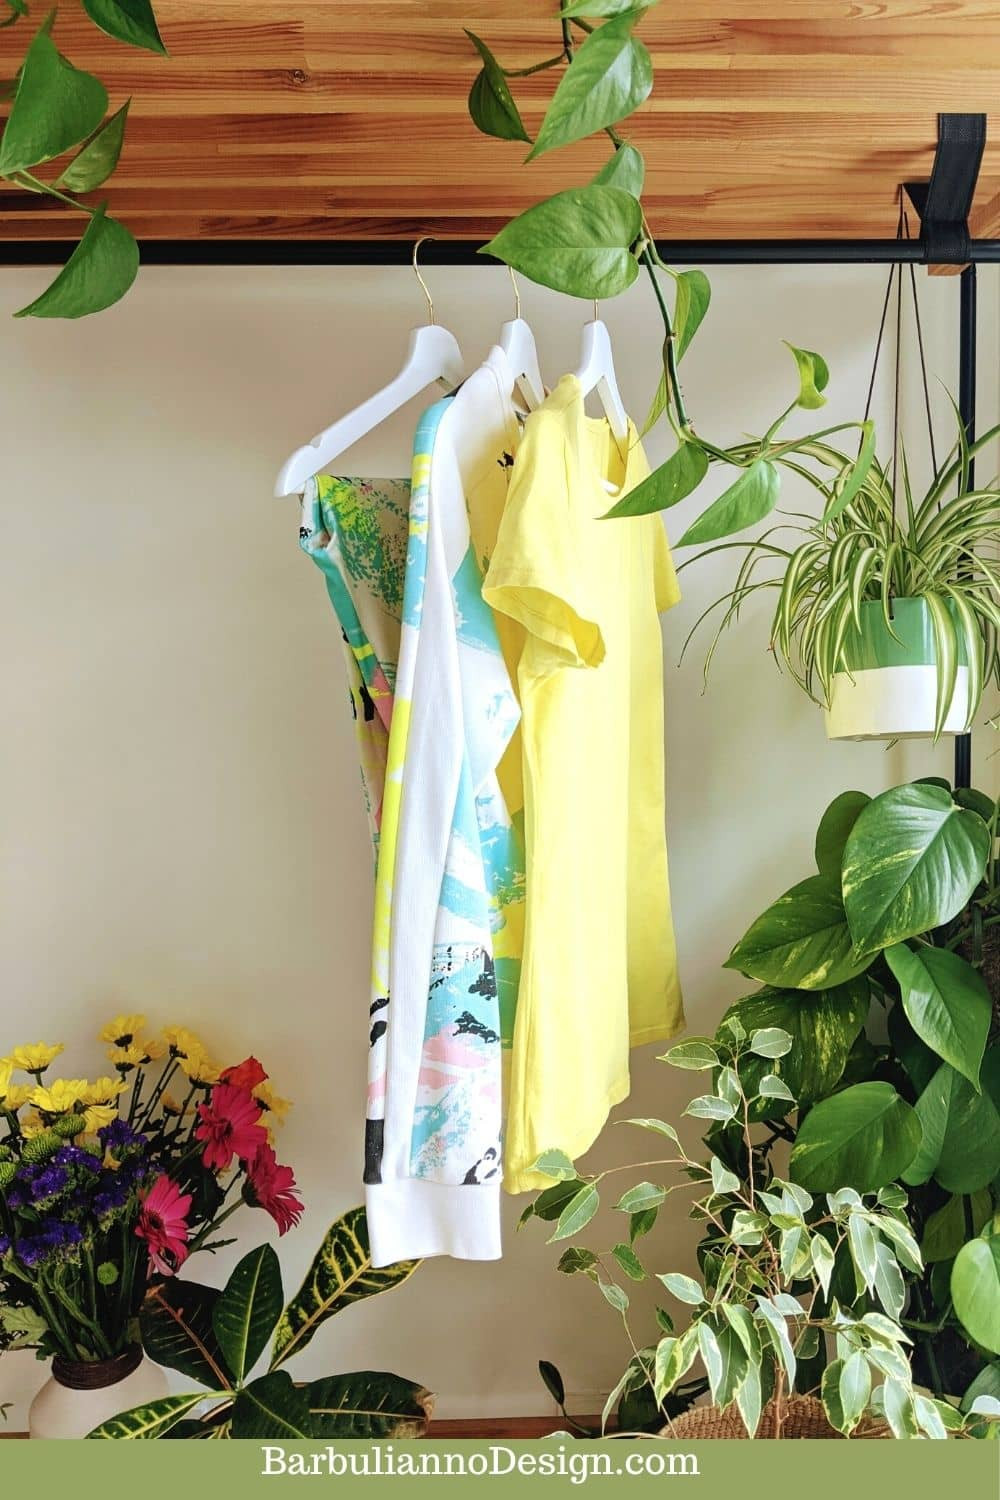 Cohesive sustainable open style wardrobe, with yellow clothes,  decorated with plants and matching flowers.